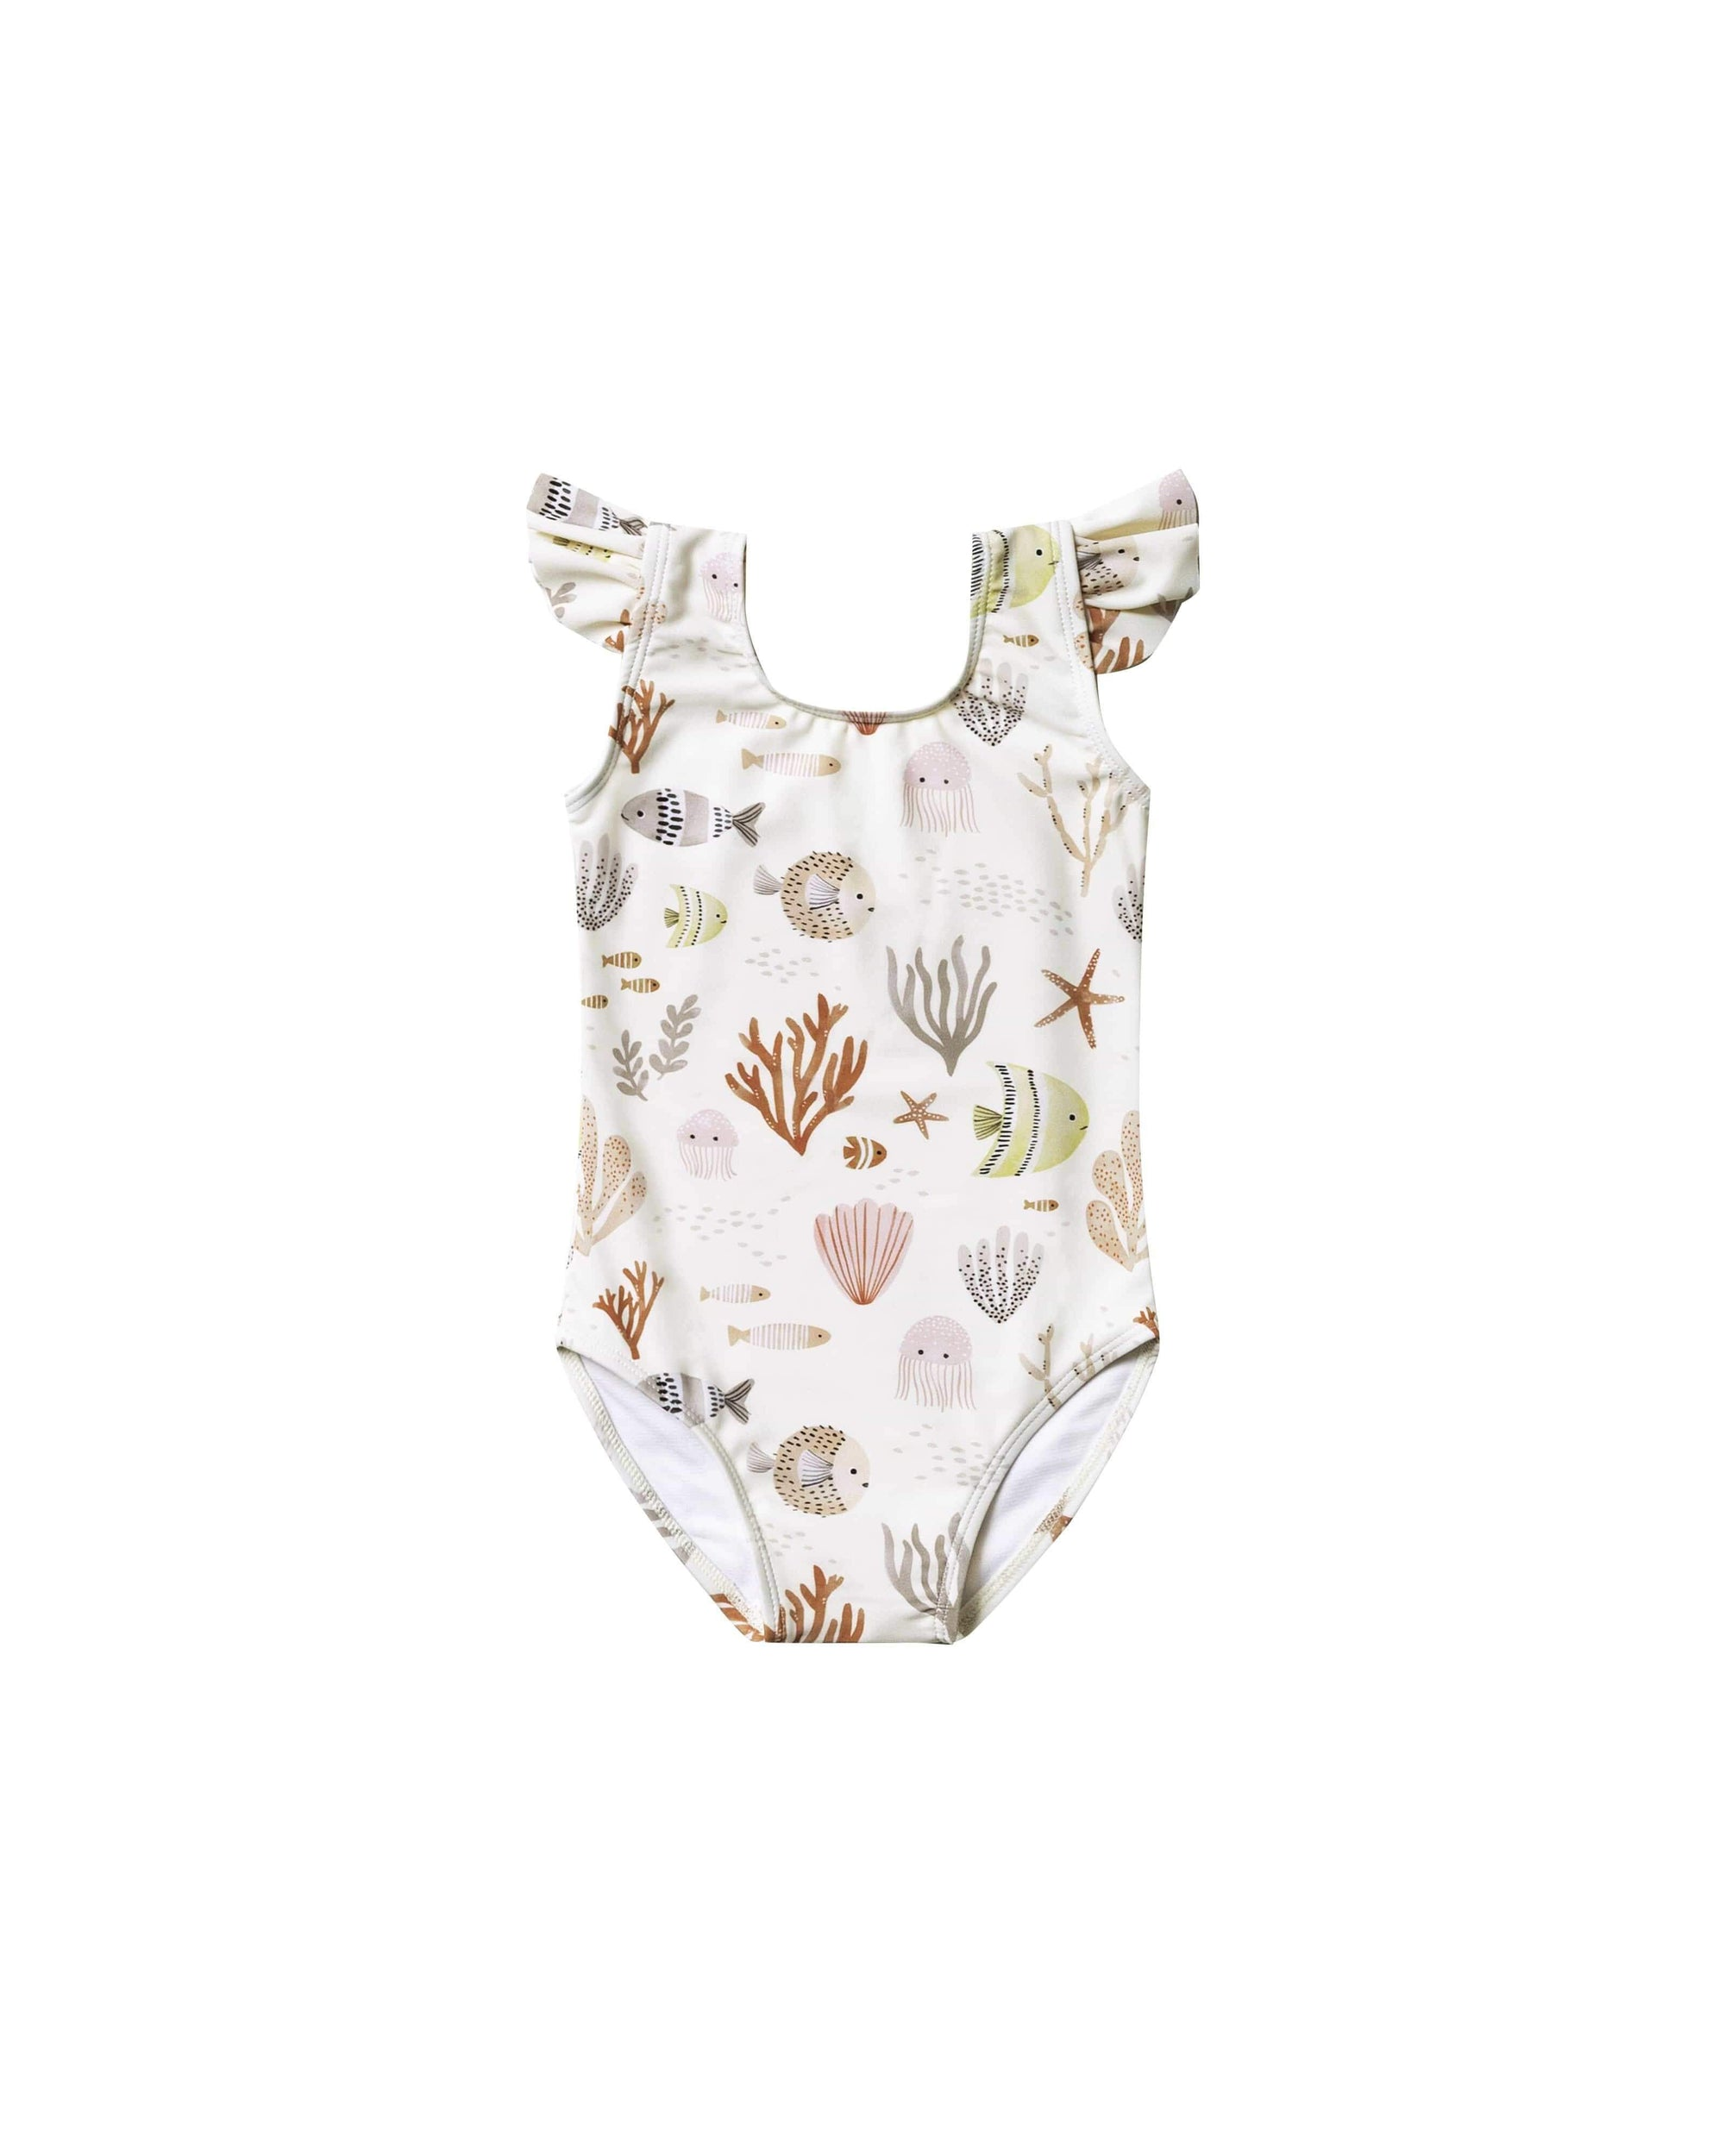 Rylee & Cru 1 Piece Swimsuit Sea Life Frill Onepiece - Ivory